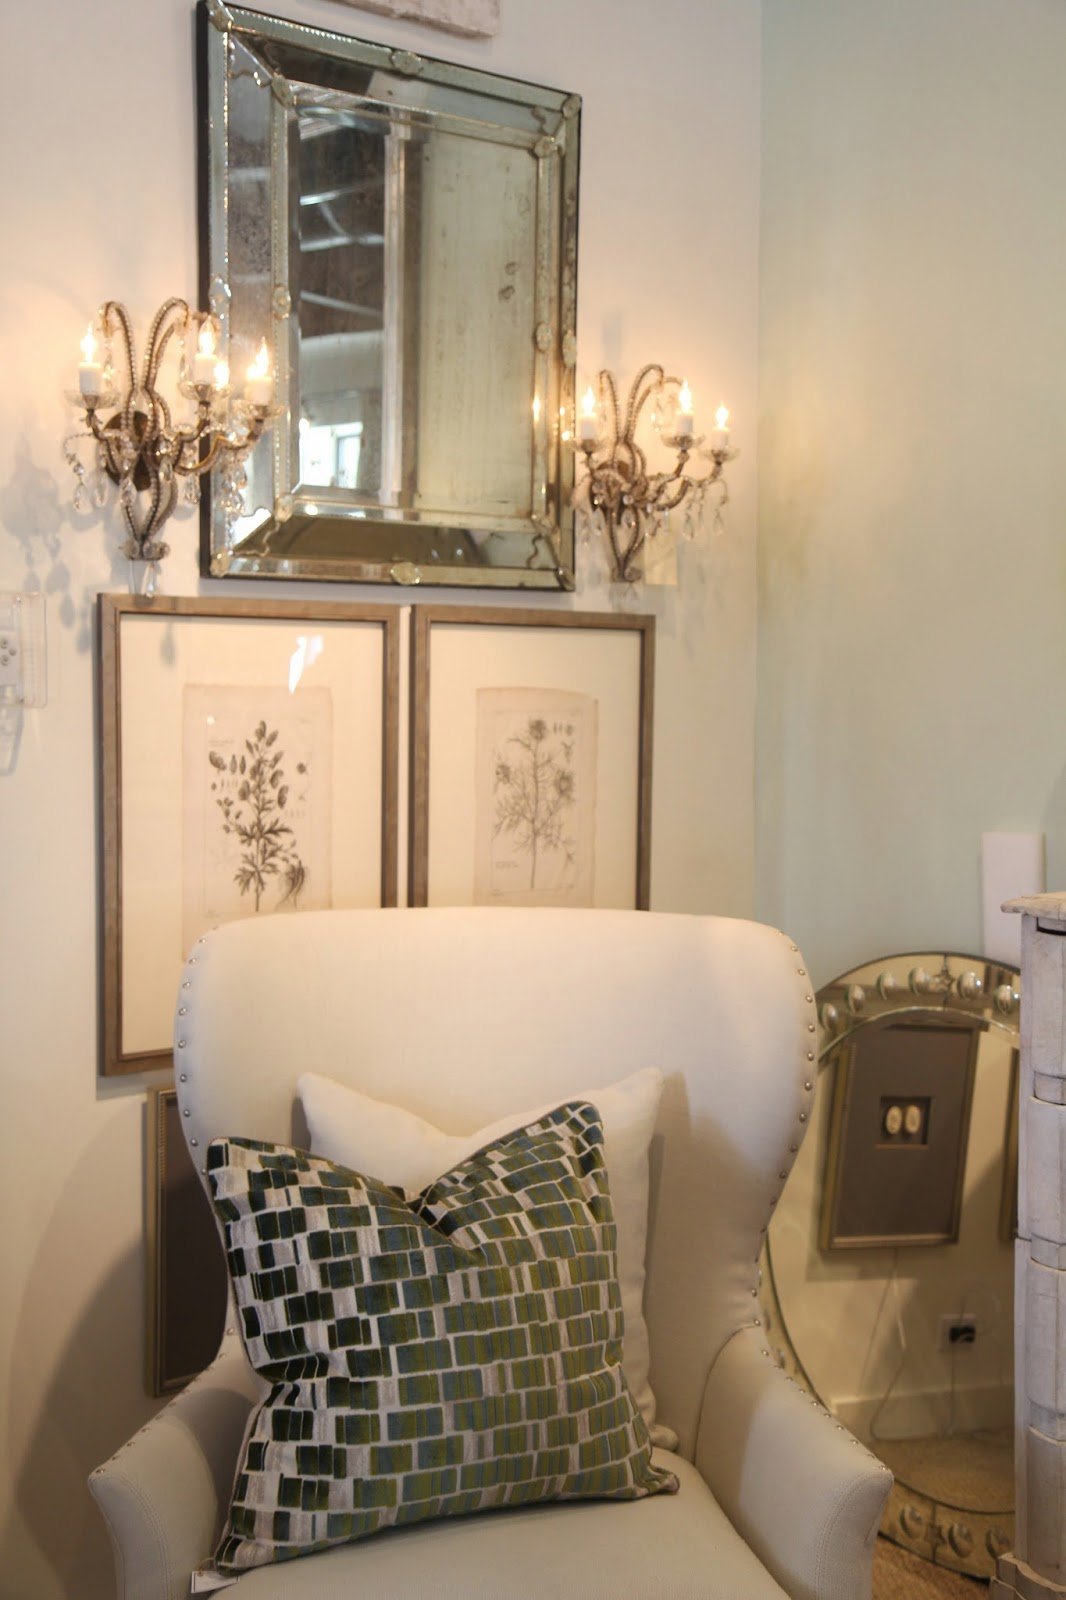 Antique sconces; Inspirational Chandeliers and Sconces; Nora's Nest